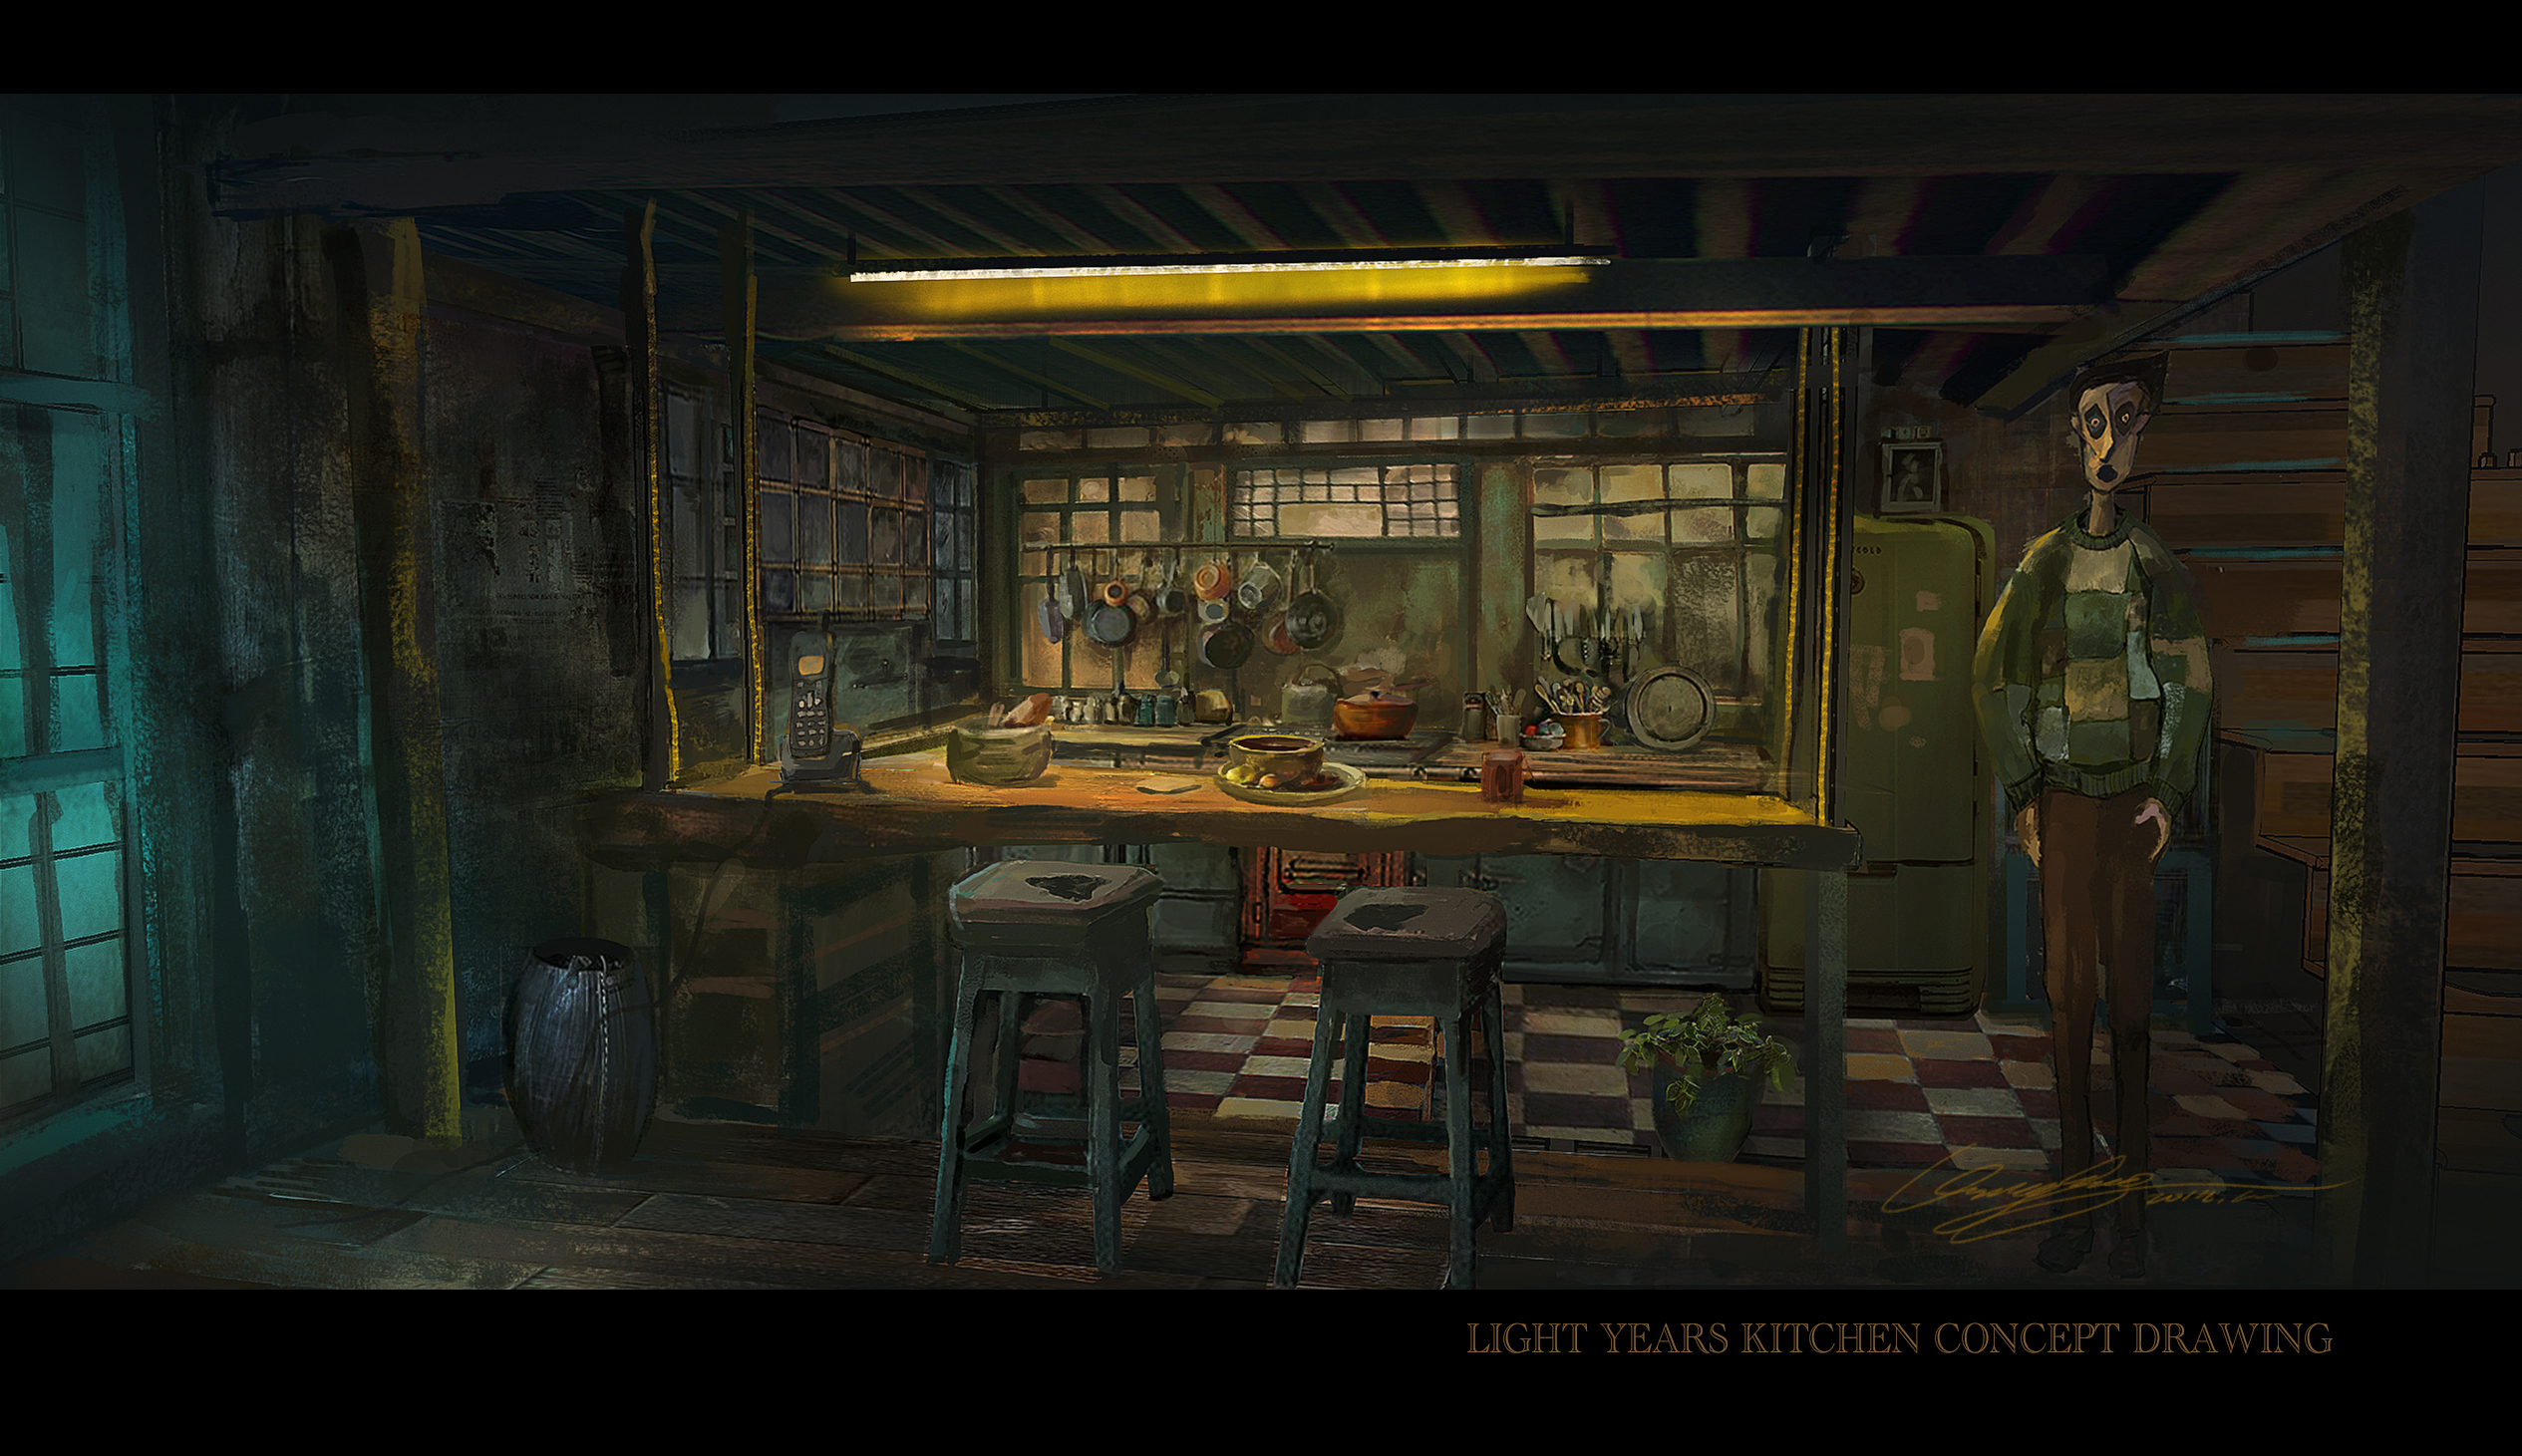 light years kitchen02 copy (2)